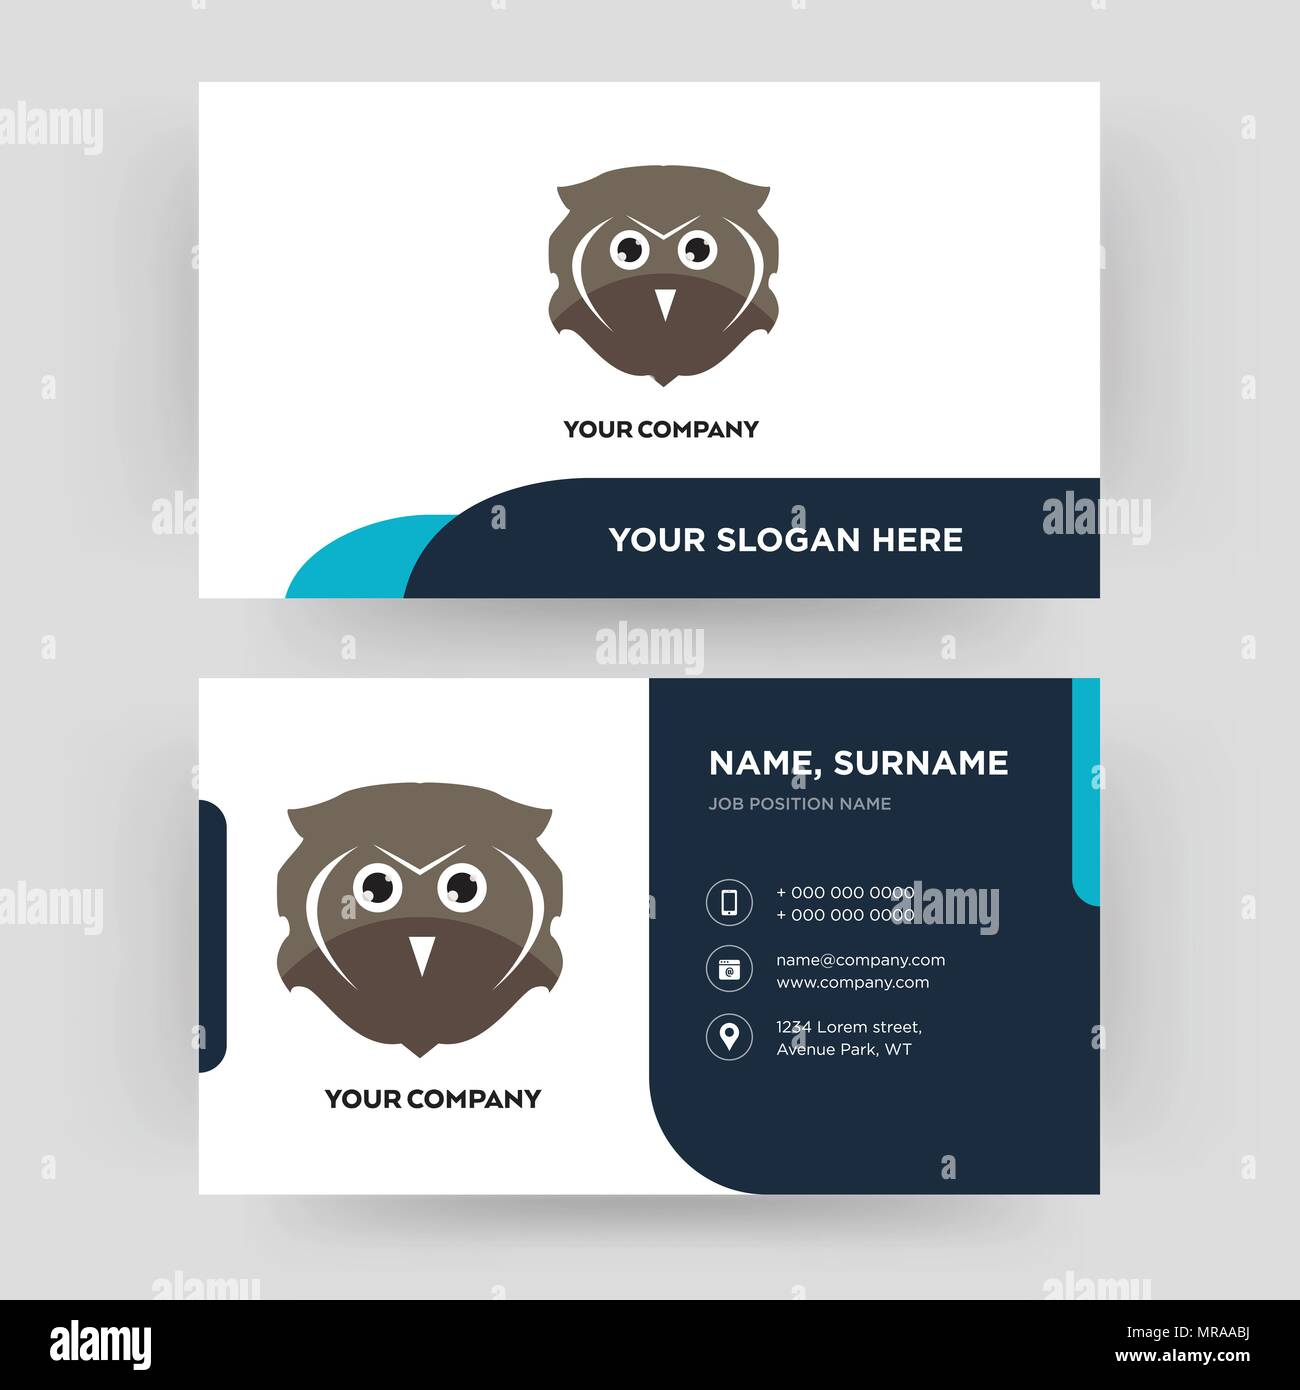 Free owl business card design template visiting for your company free owl business card design template visiting for your company modern creative and clean identity card vector colourmoves